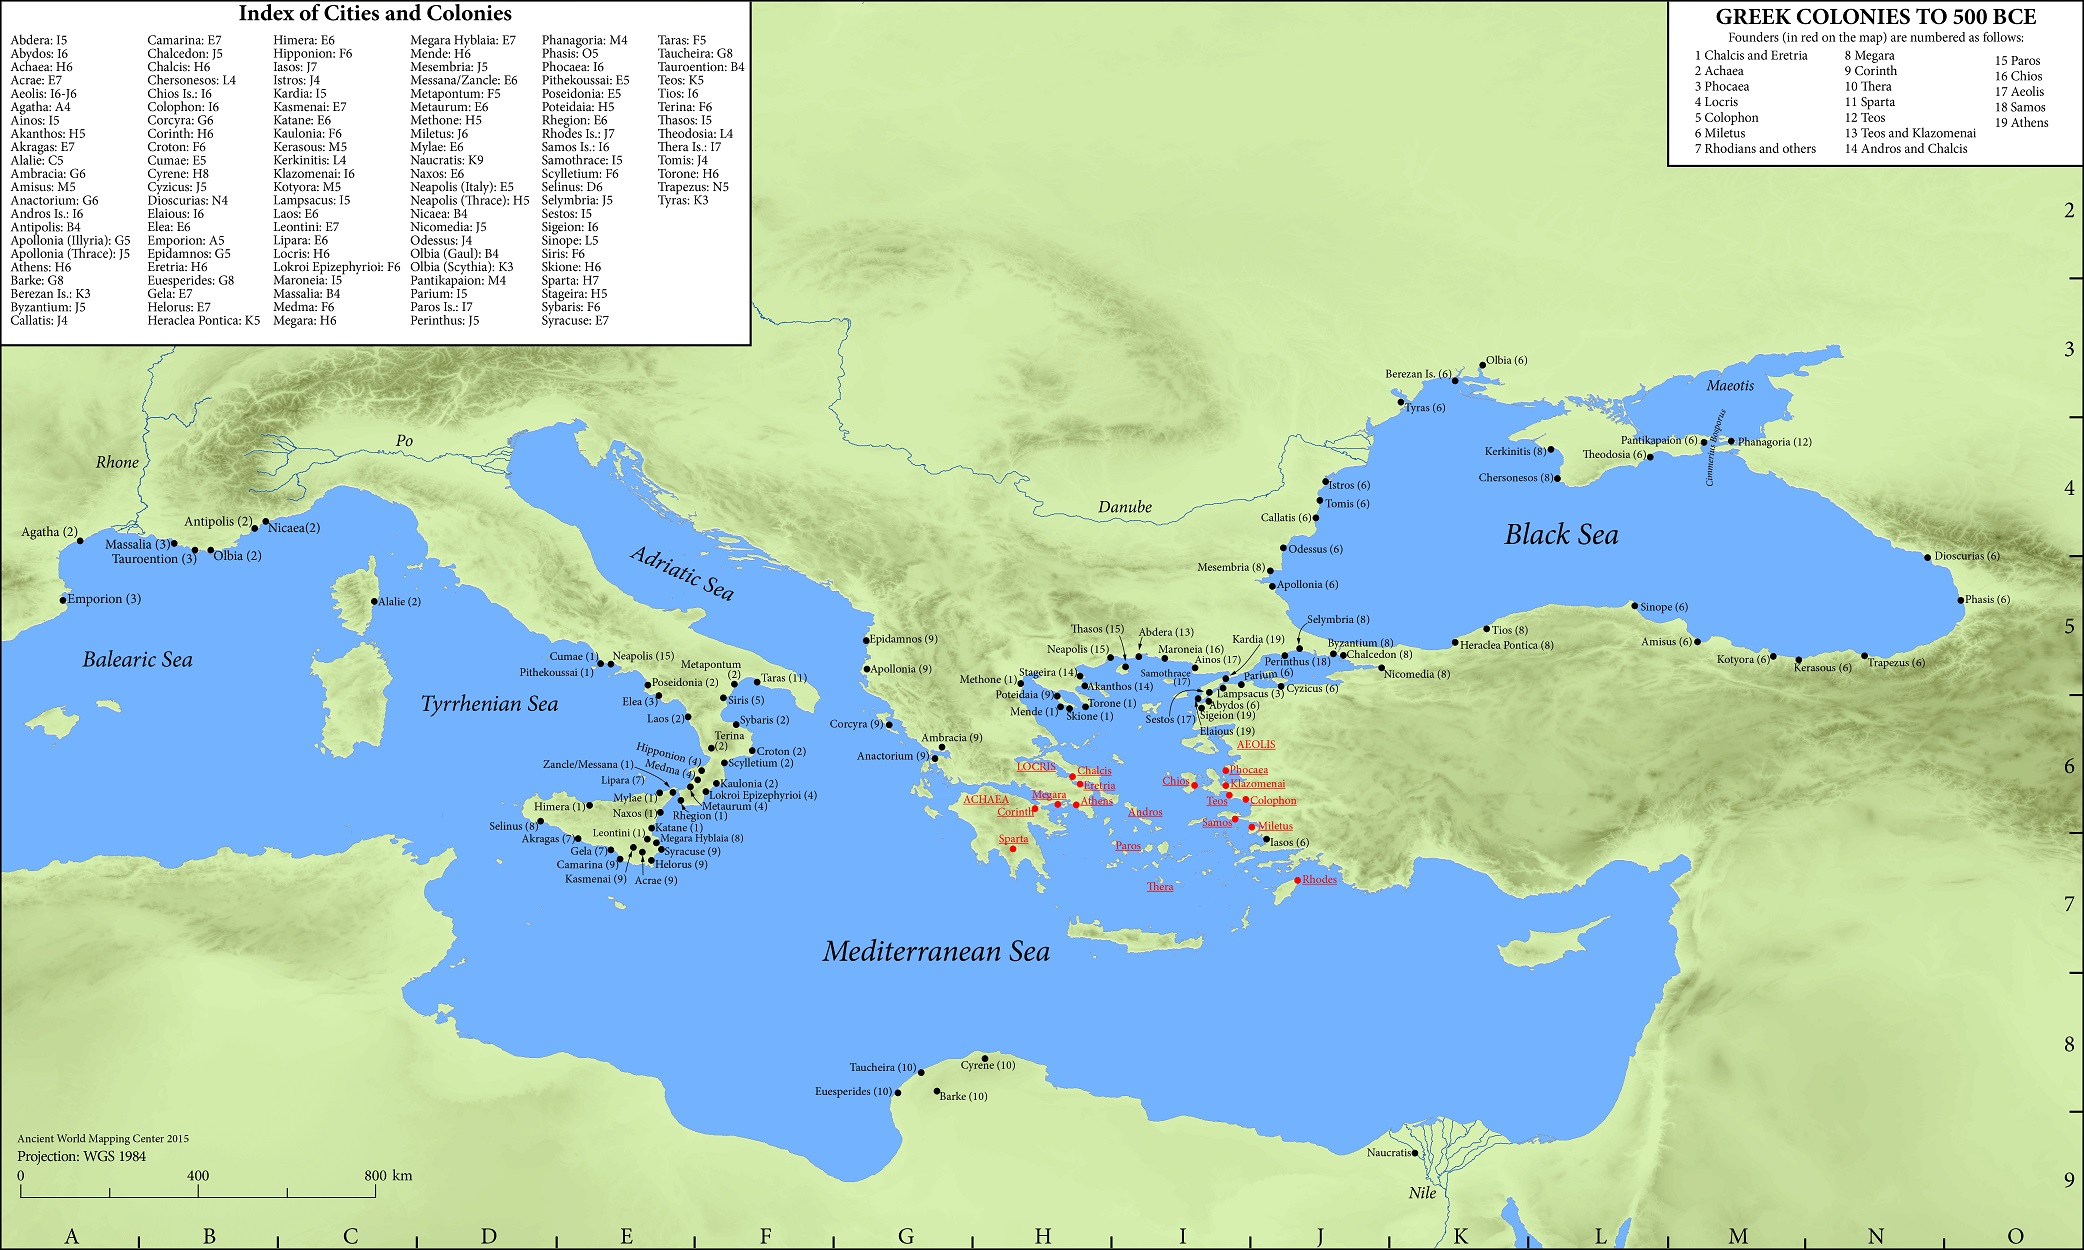 Map: Greek Colonies to 500 BCE - Oxford Clical Dictionary on map language, map world, map jokes, map google, map math,